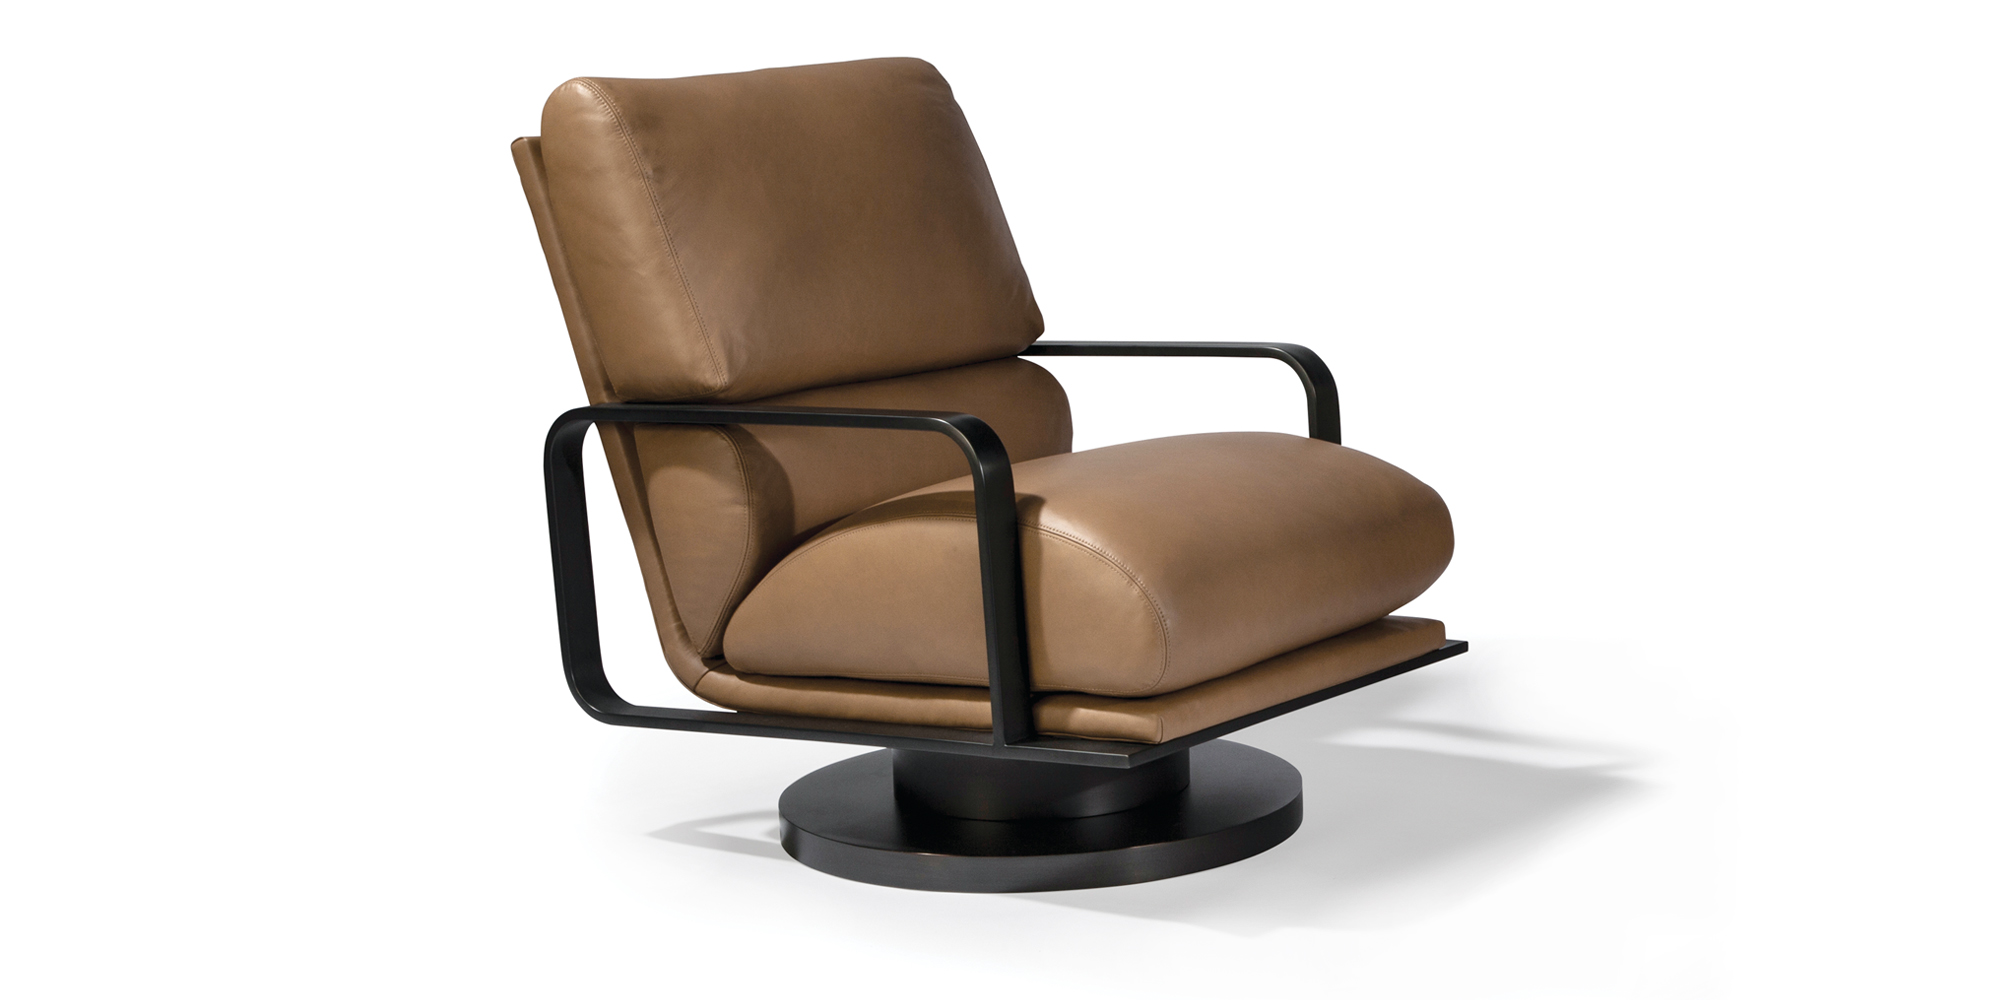 Outstanding Thayer Coggin Swivel Chairs And Recliners Unemploymentrelief Wooden Chair Designs For Living Room Unemploymentrelieforg